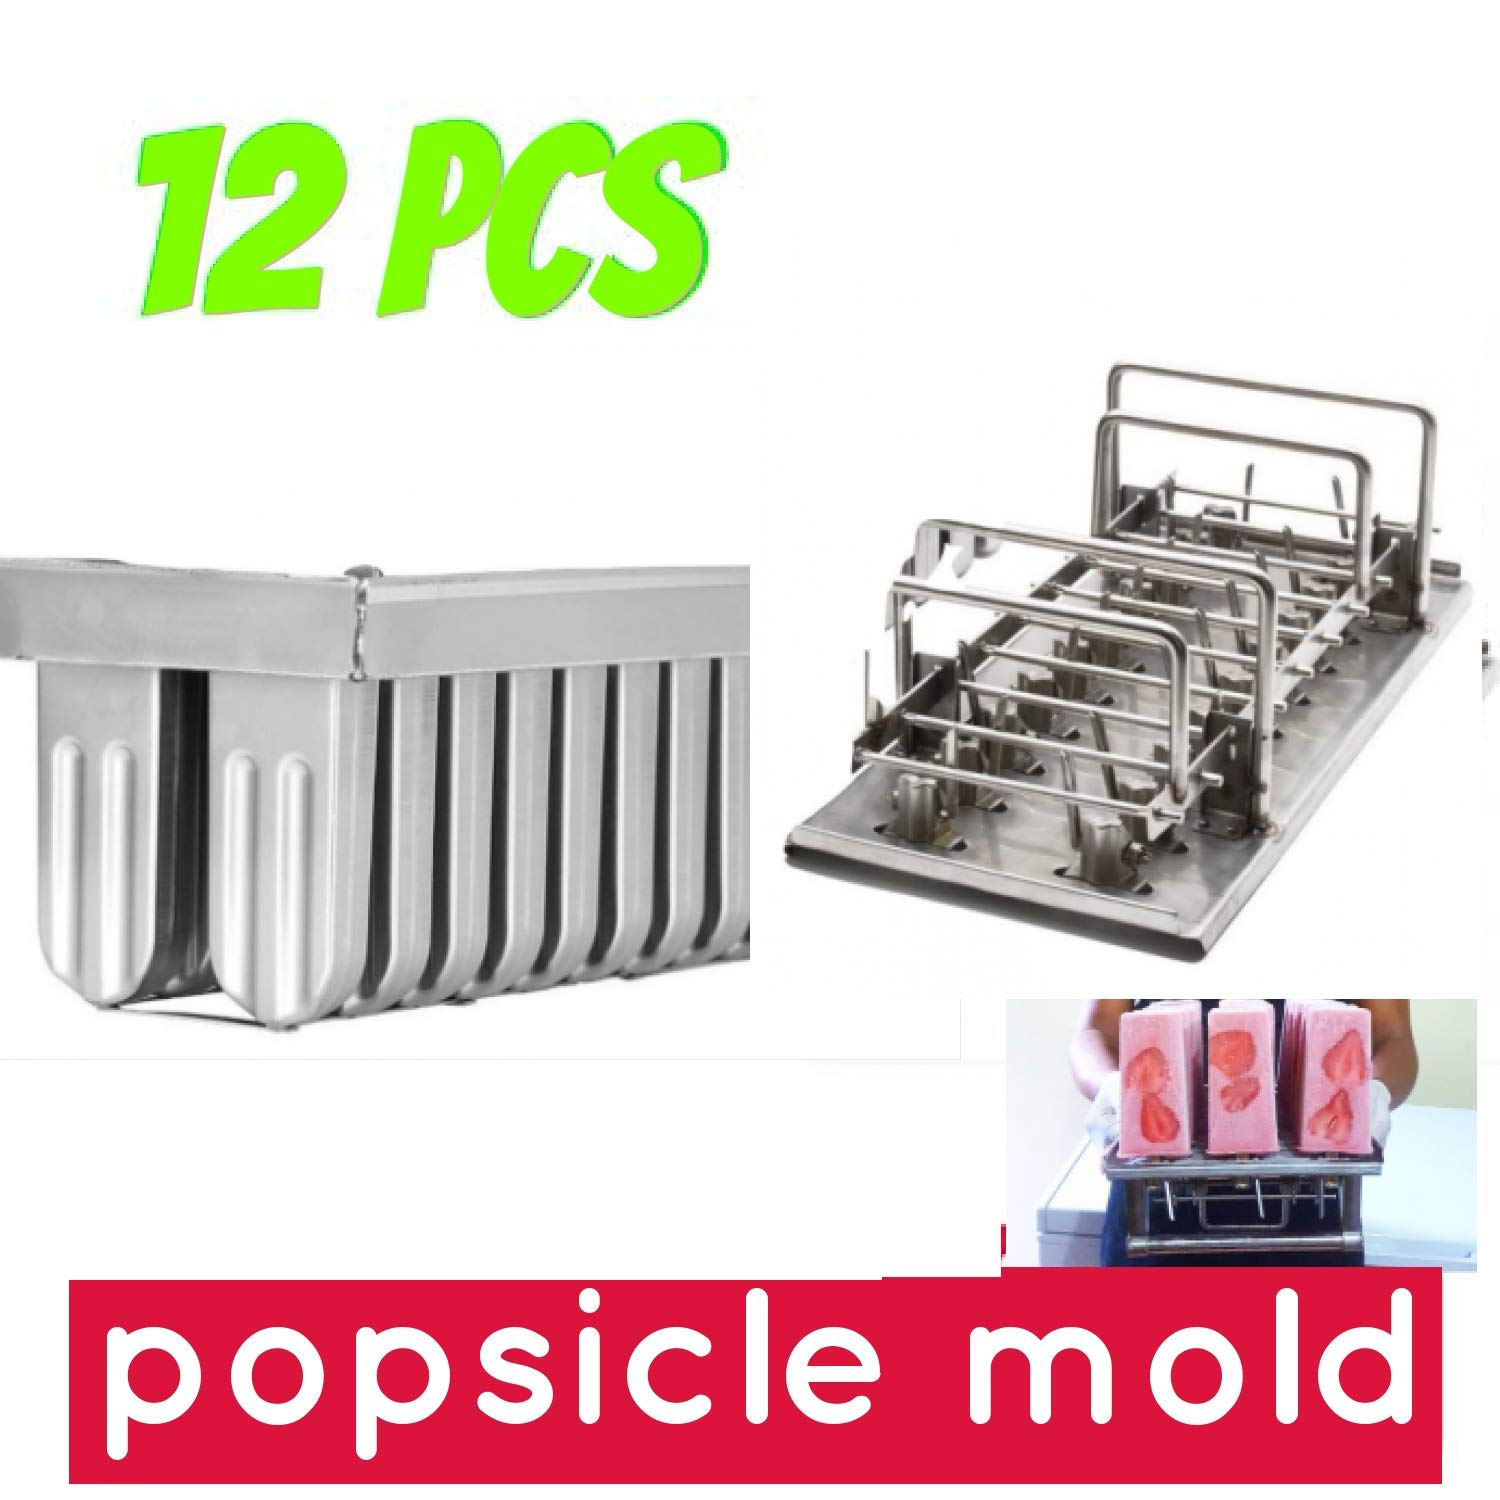 12pcs stainless steel popsicle mold machine -ice pop molds bpa free -ice Cream Mold pop molds ice pop molds stainless steel-ice pop maker molds Ice Cream Stick Holder(,12 cavity mold) by pizety